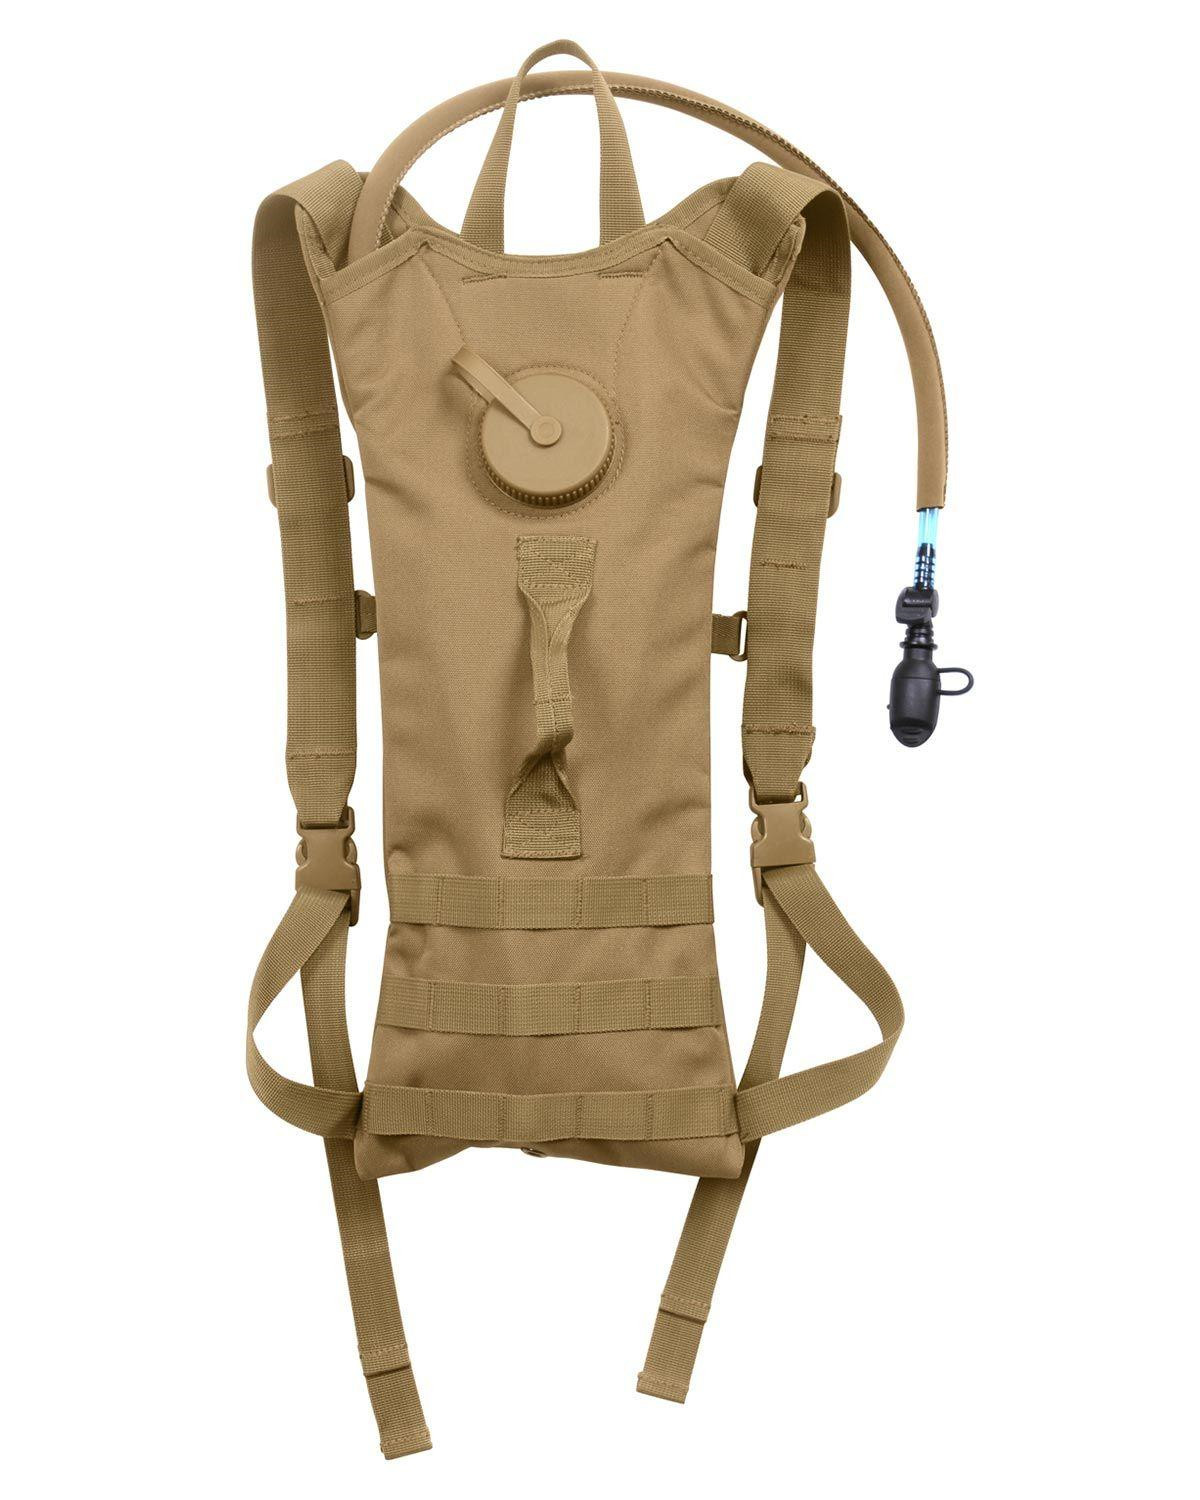 Image of   Rothco MOLLE Vandbeholder Hydration Rygsæk - 3 Liter (Coyote Brun, One Size)